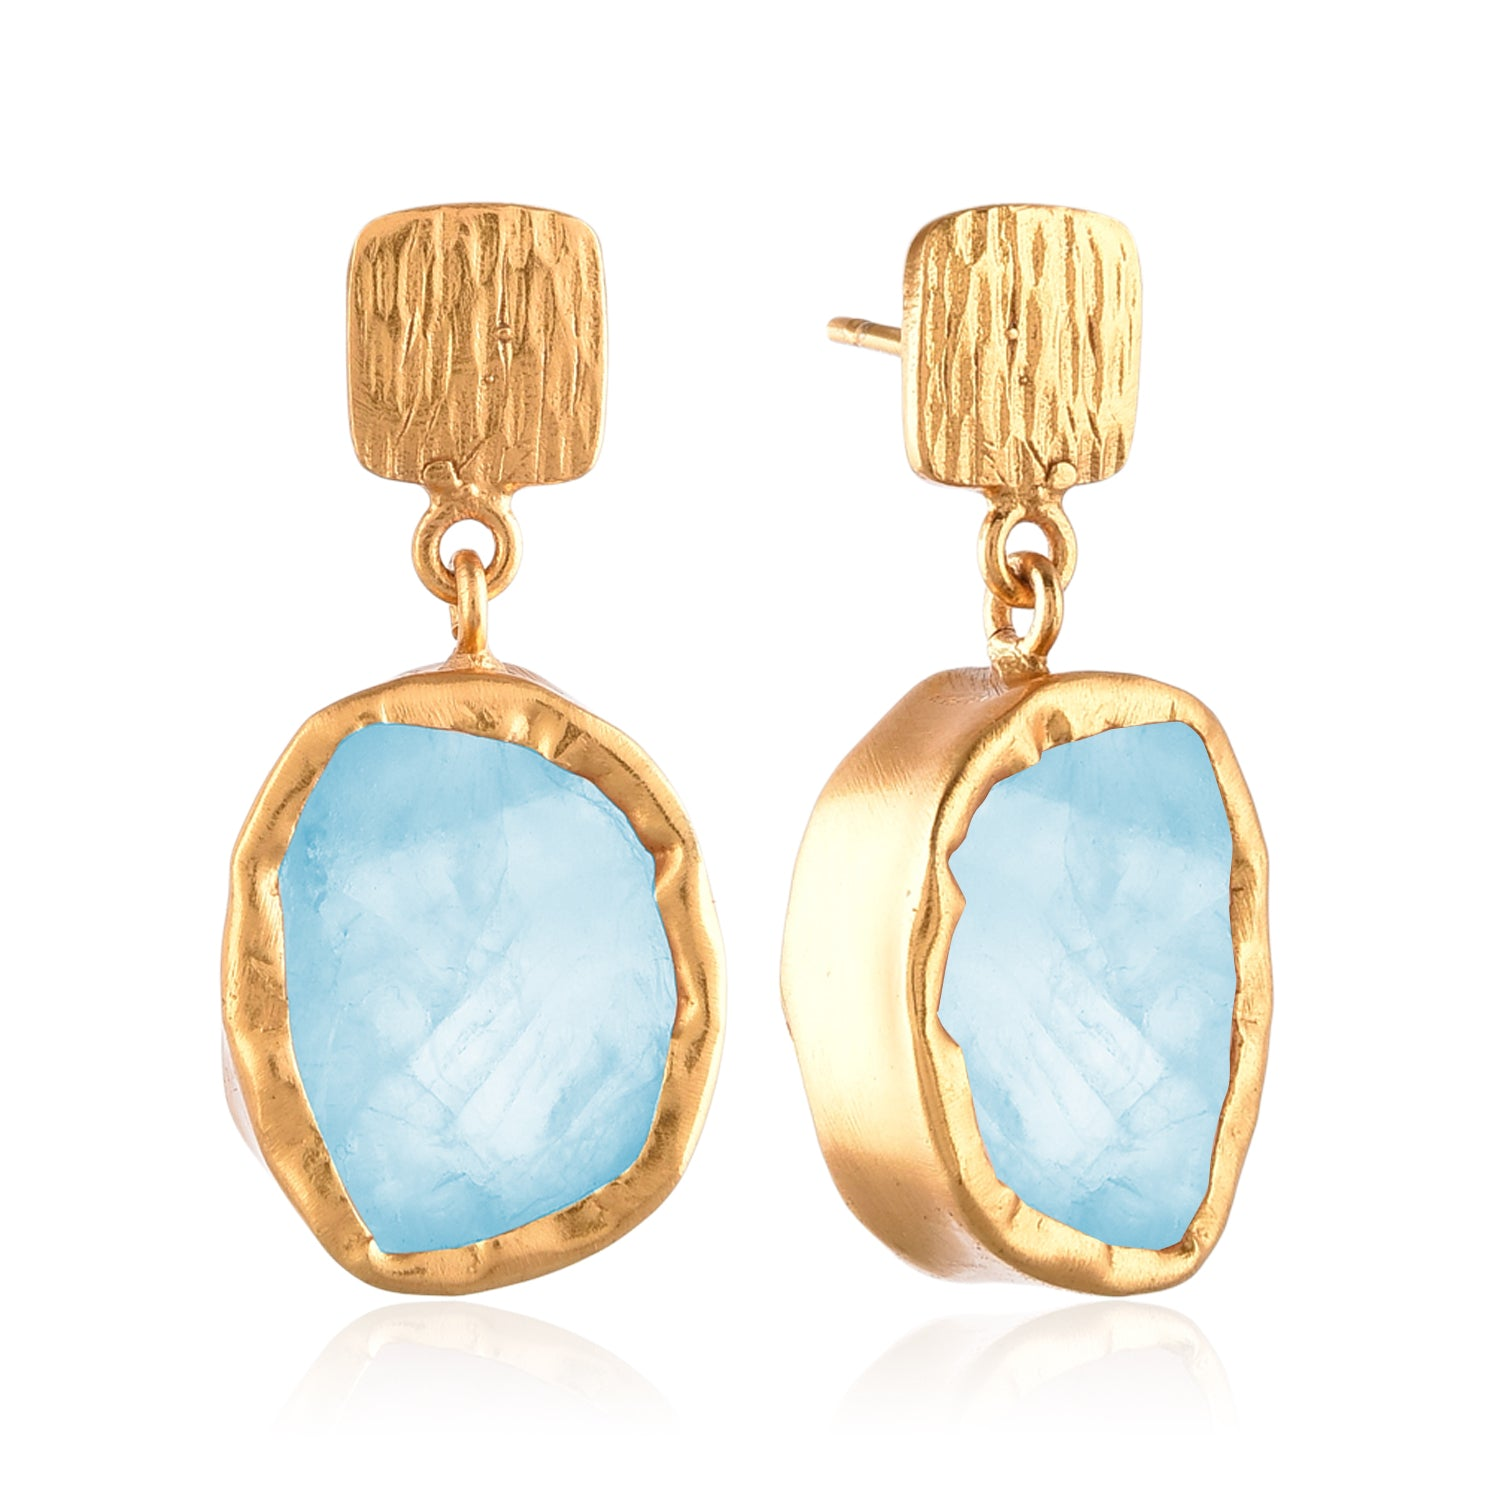 Woodsmoke Shine - Blue Topaz